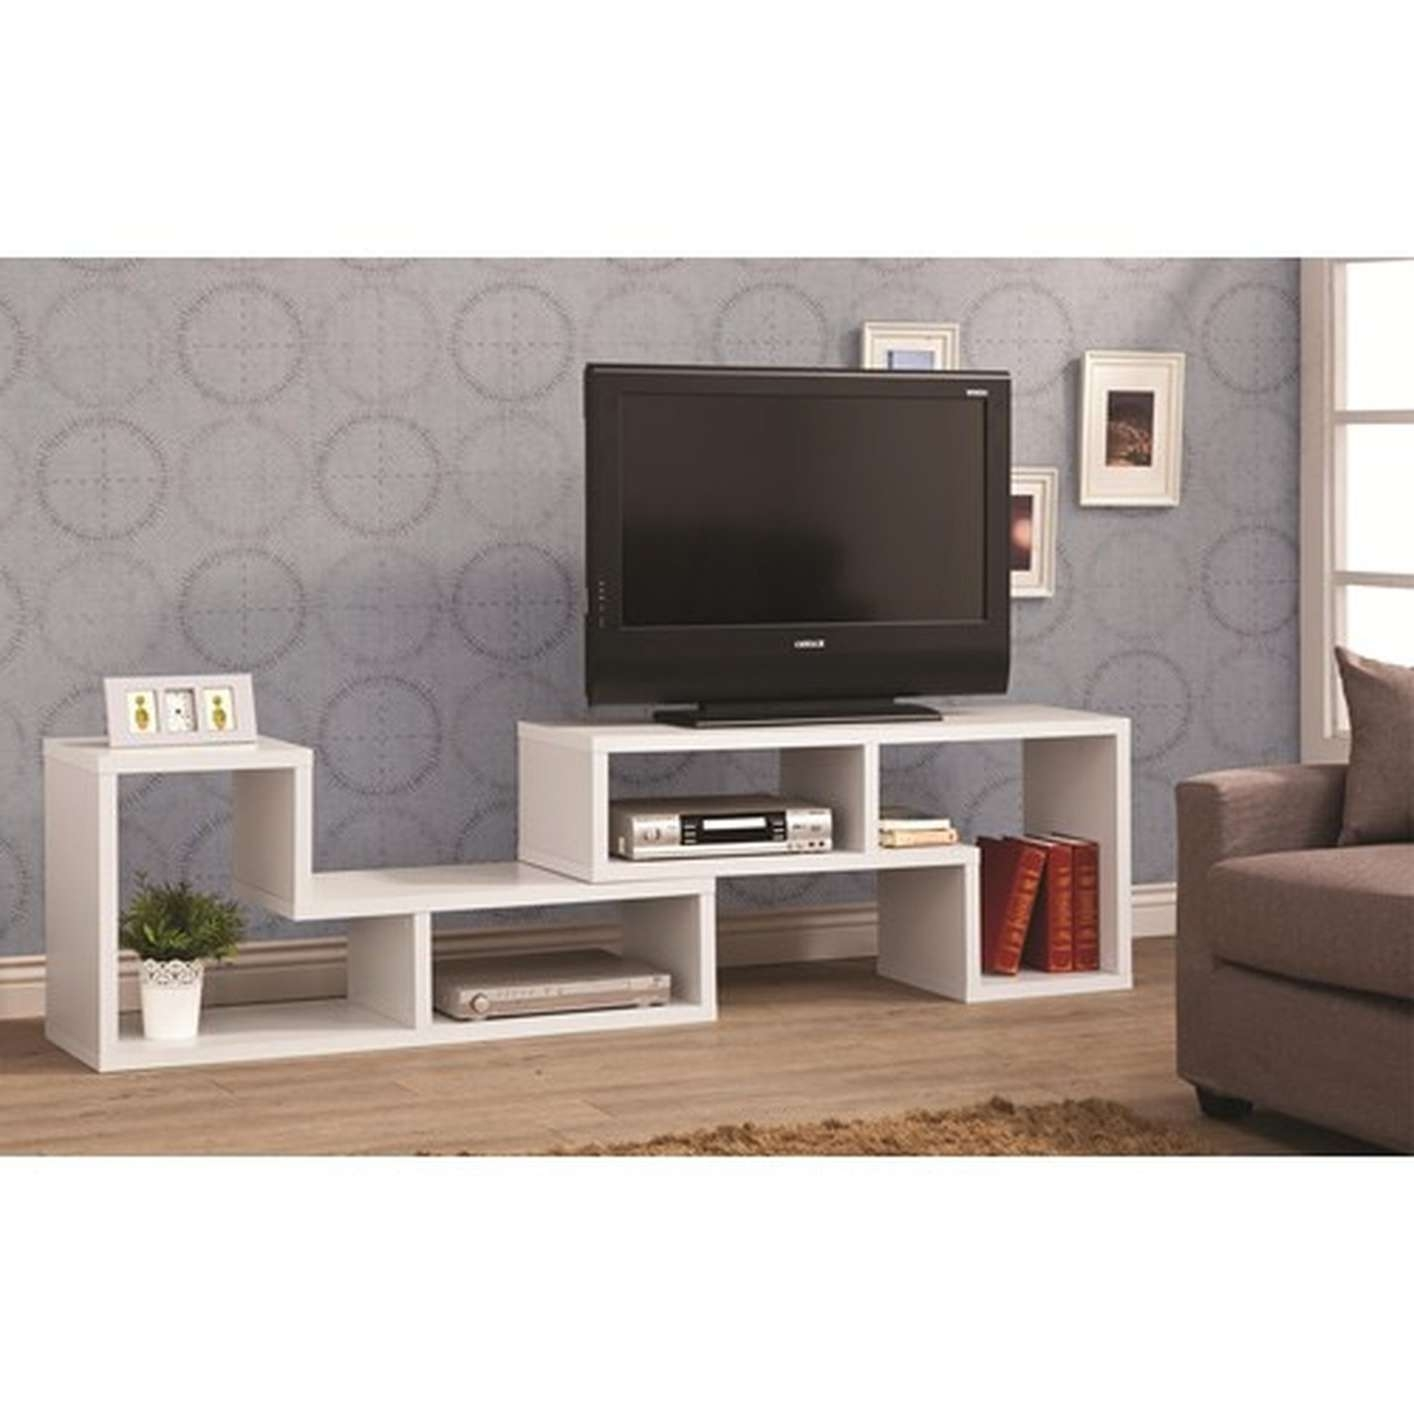 White Wood Tv Stand – Steal A Sofa Furniture Outlet Los Angeles Ca Throughout Modern Wooden Tv Stands (View 15 of 15)